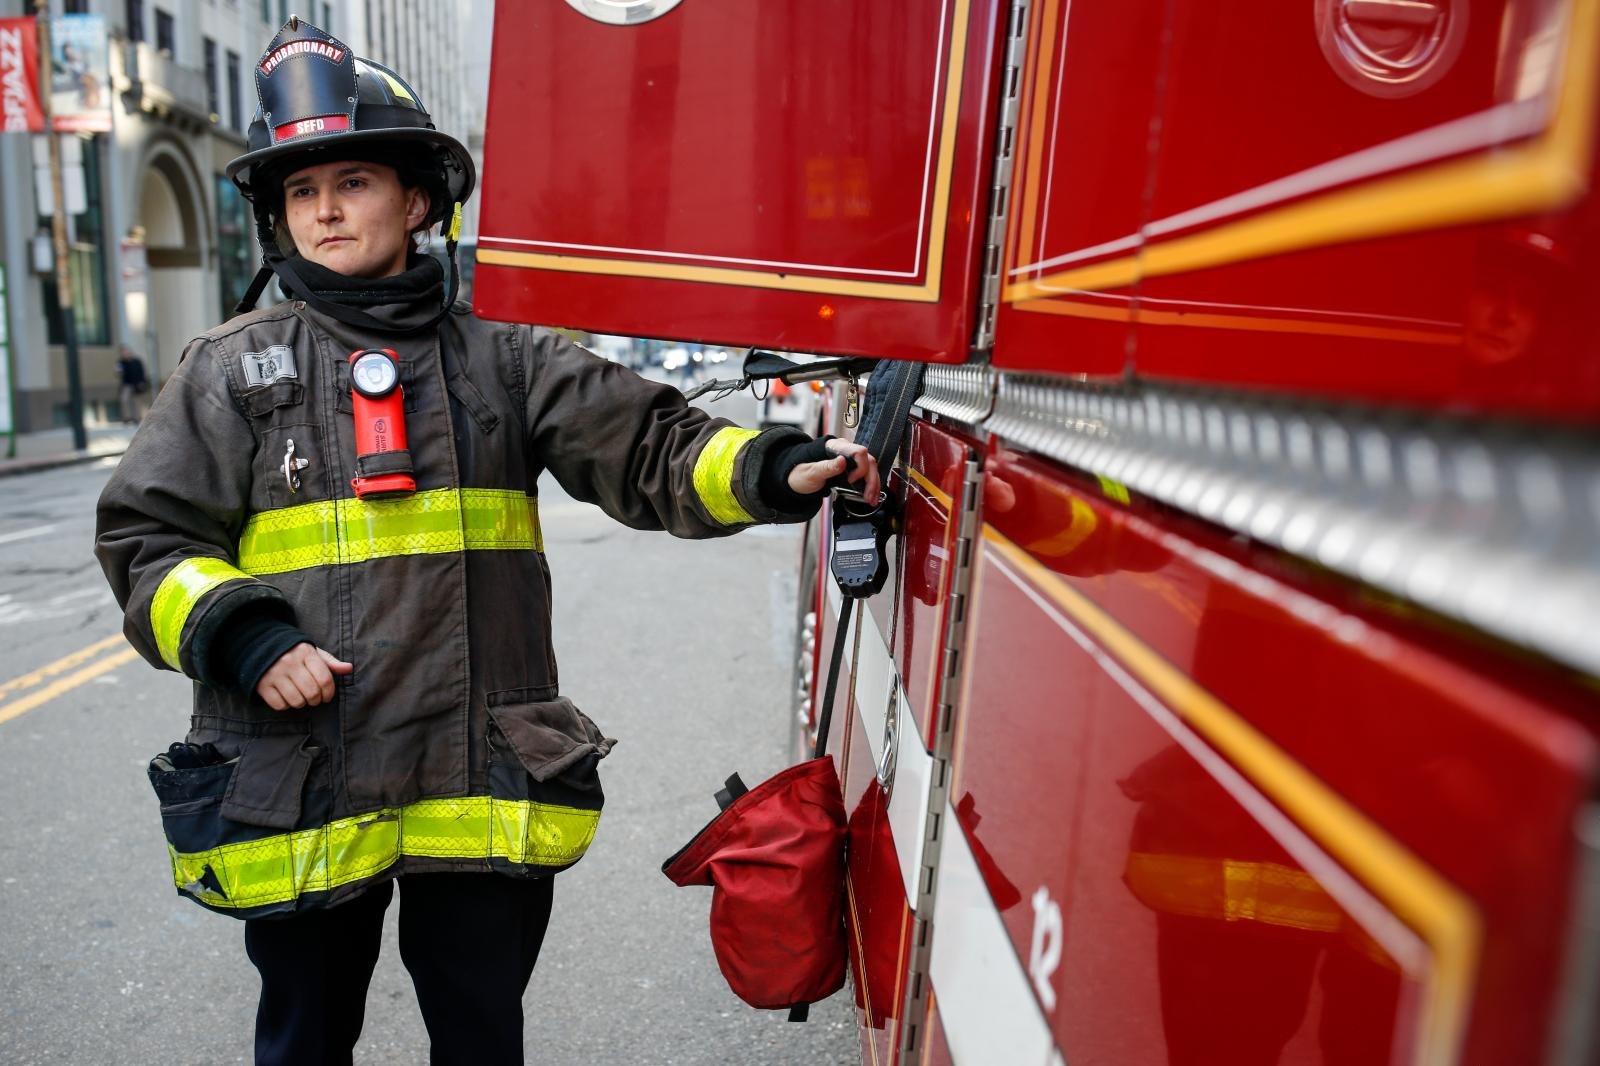 Probationary firefighter, Sasha Trofimova, performs a routine safety check on truck 13 outside of fire station 13.